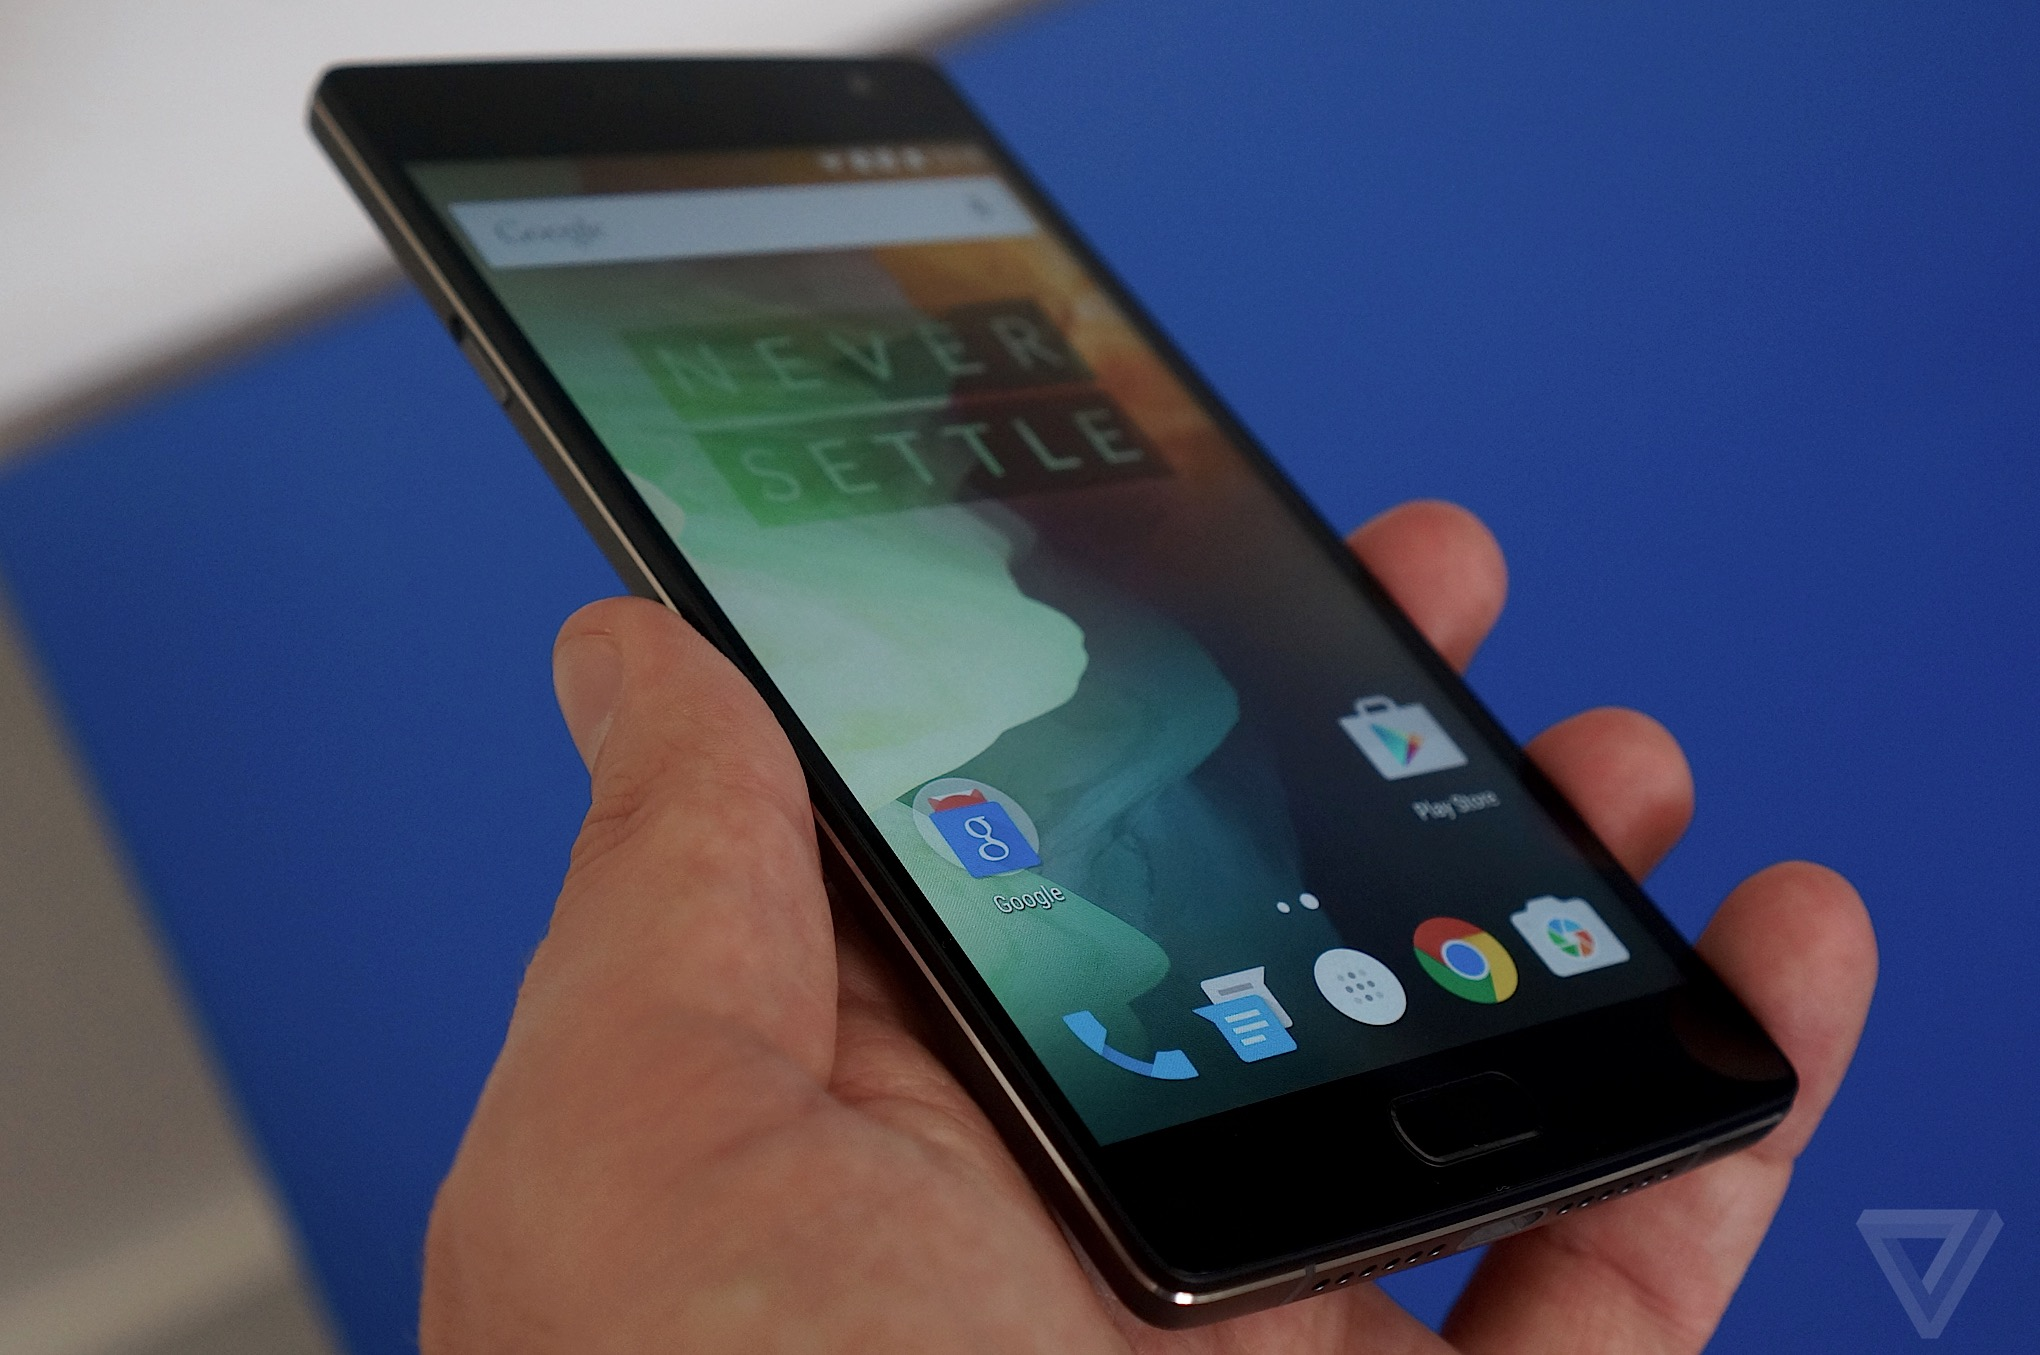 The OnePlus 2 pushes the boundaries of how cheap a flagship phone can be | The Verge